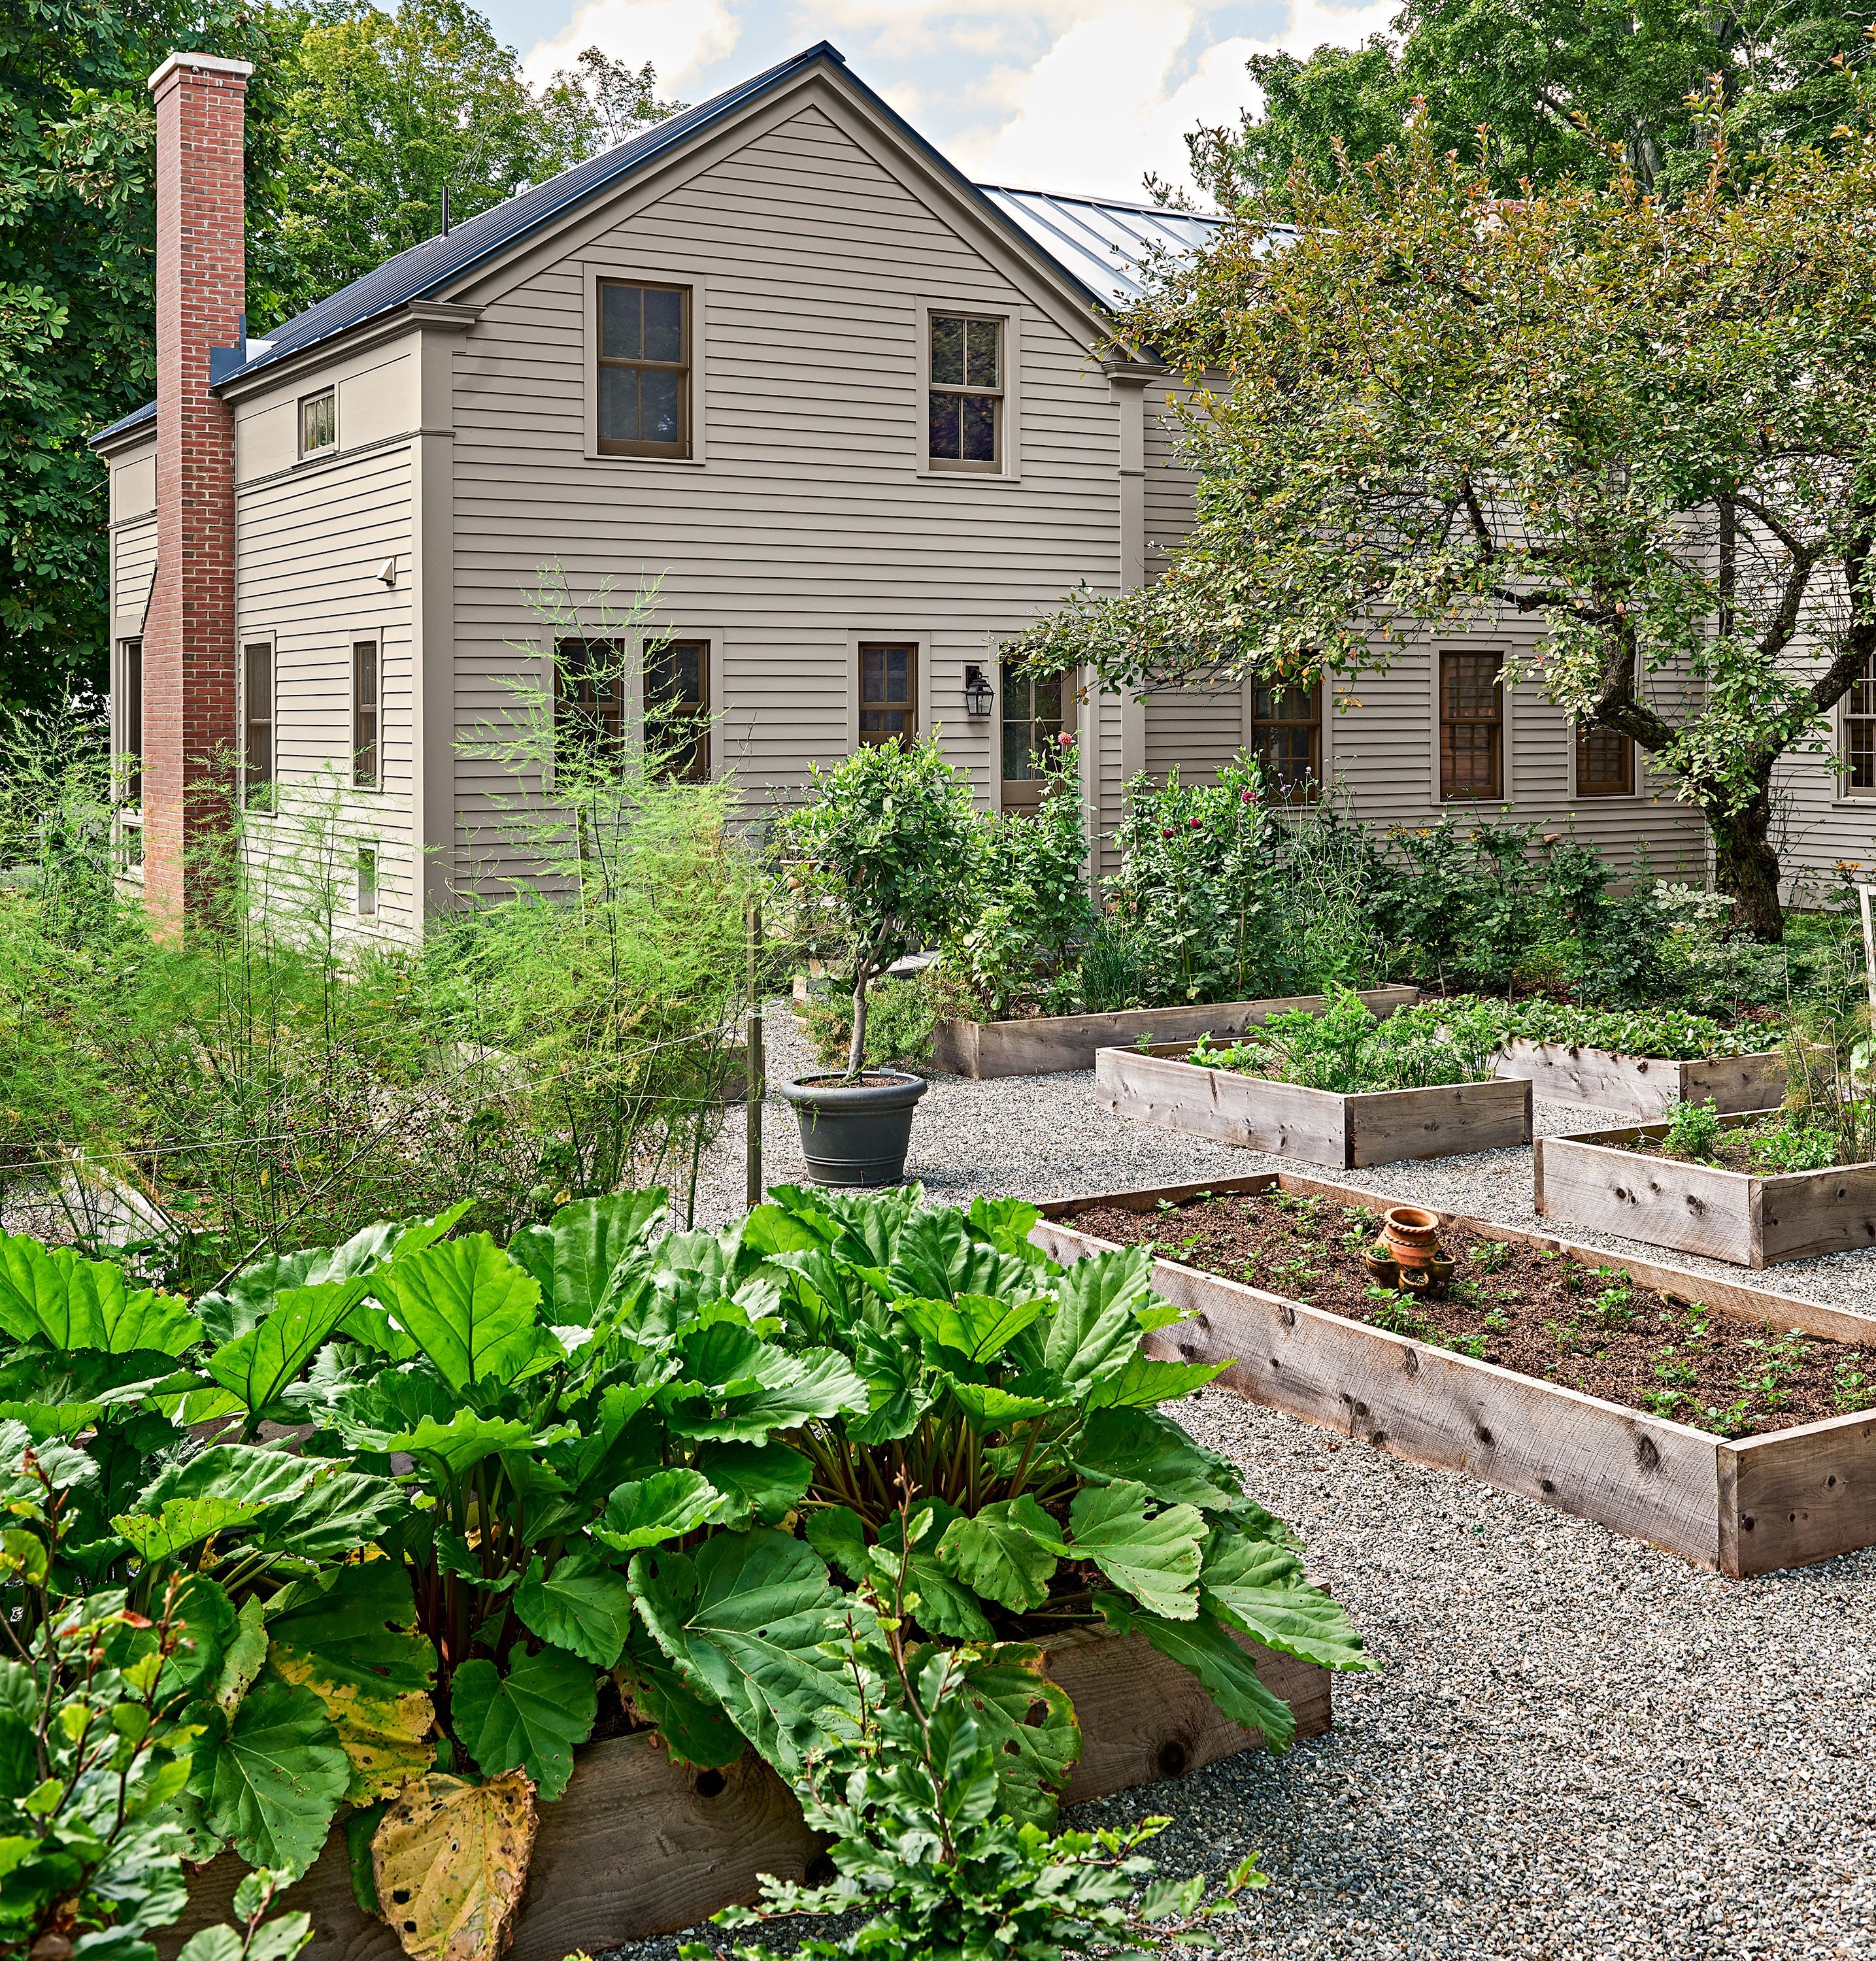 The Raised Bed Vegetable Garden Is Planted Where There Was Once An